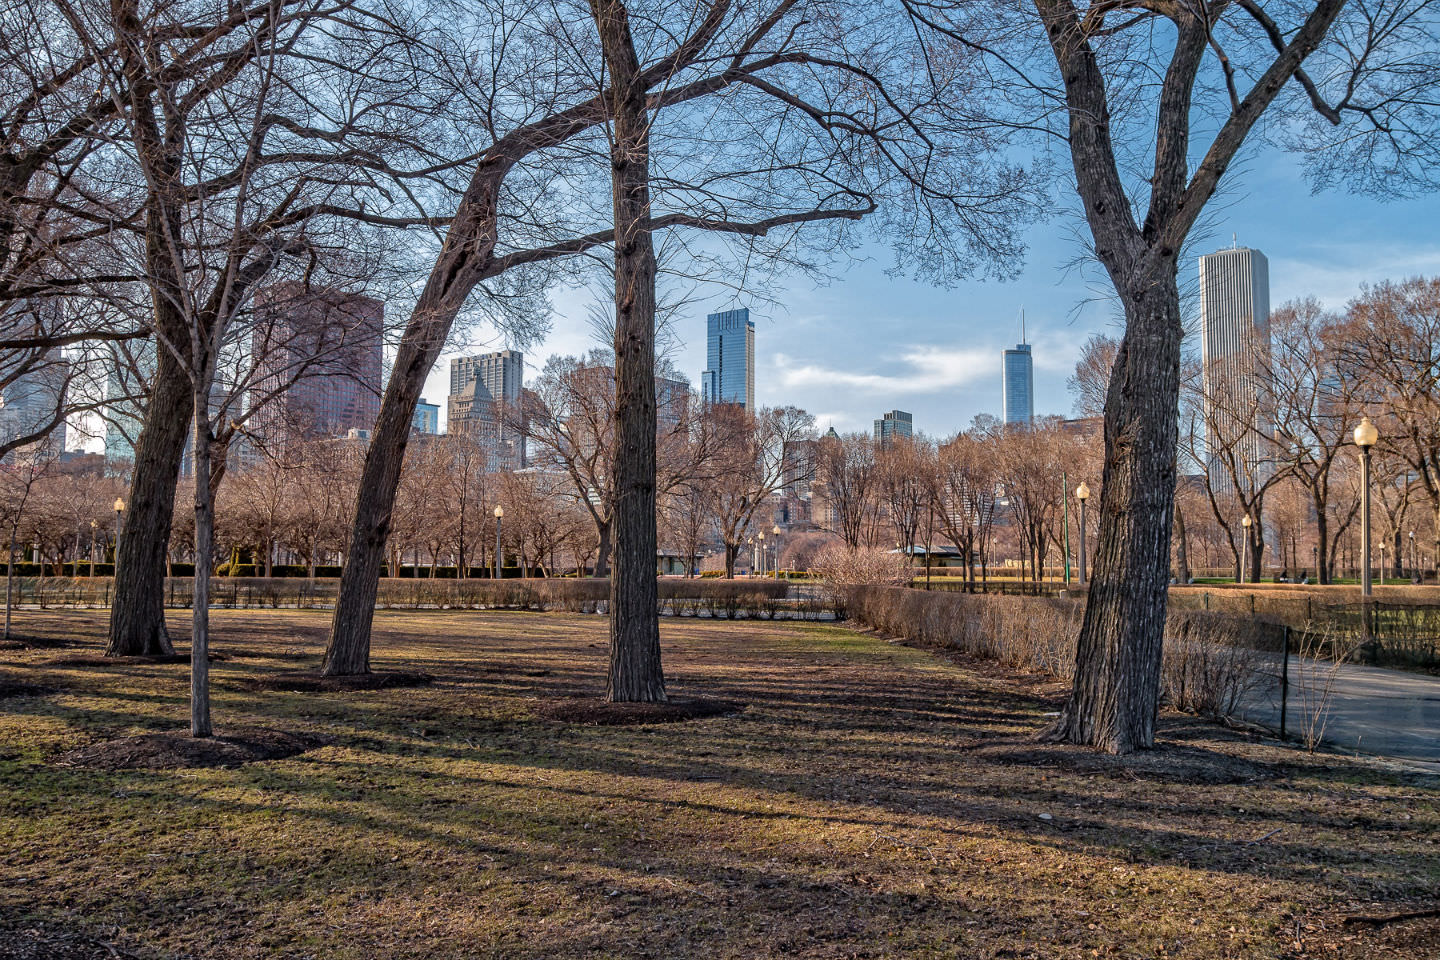 A portion of Chicago's skyline as seen through trees at Grant Park.